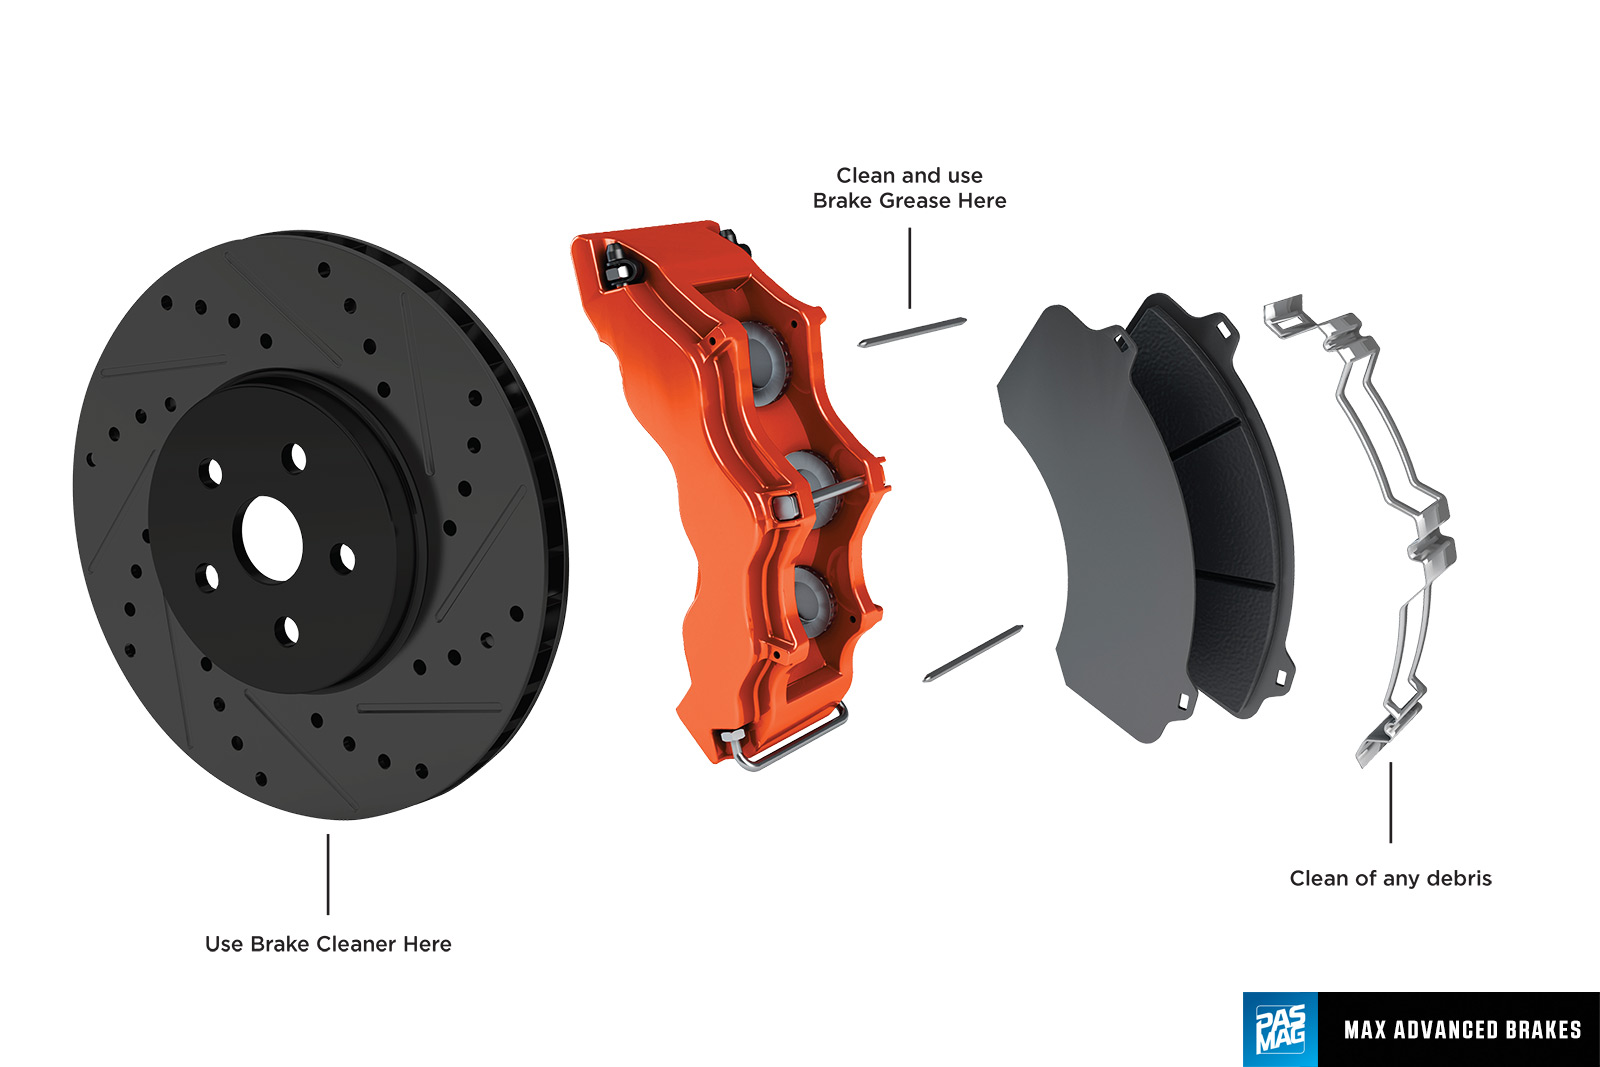 Max Advanced Brakes >> Pasmag Performance Auto And Sound Brake Maintenance Tips With